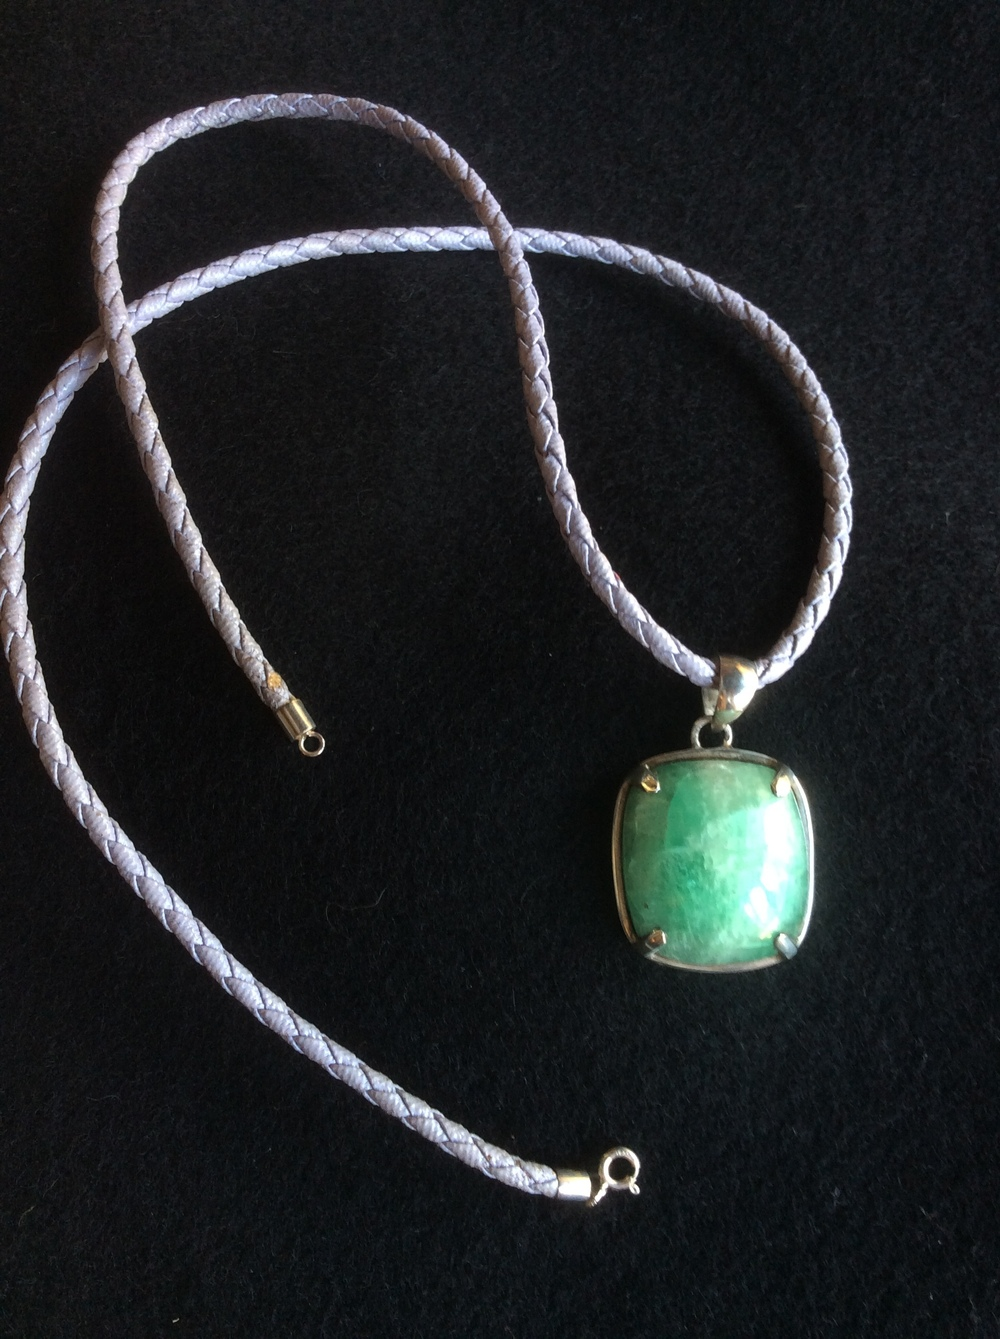 emerald pendant with leather chain